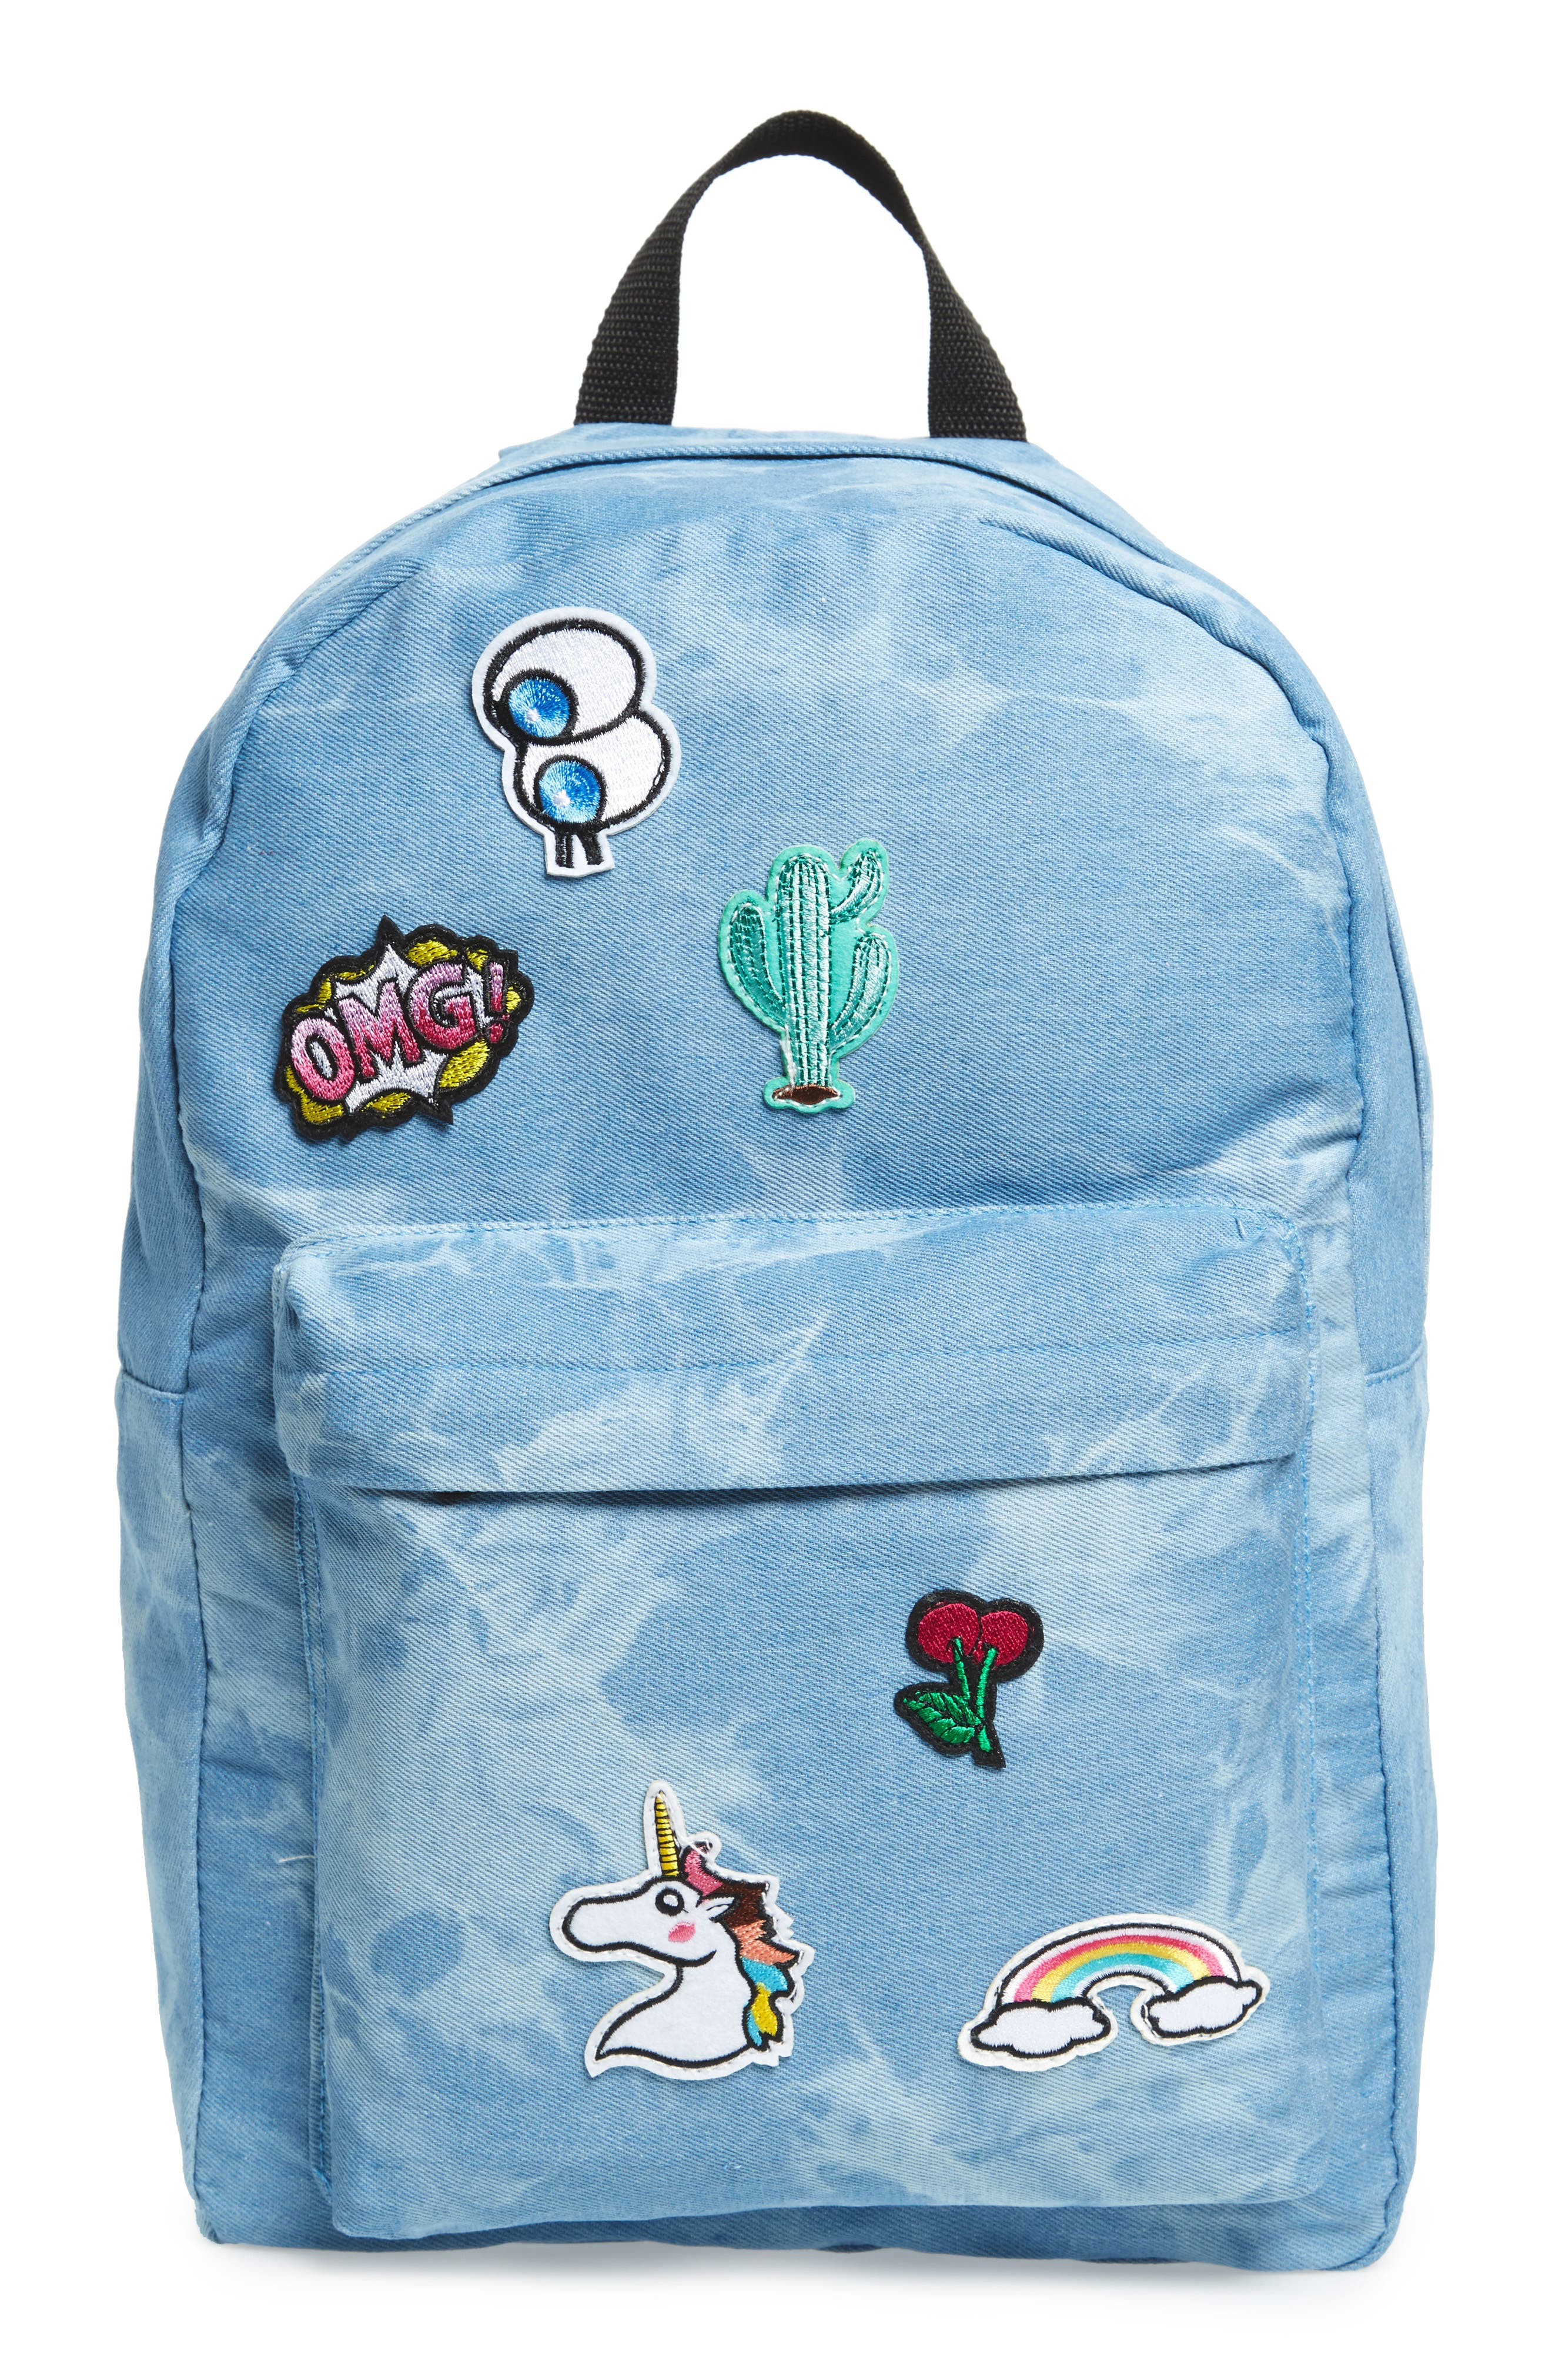 Accessory Collective Tie Dye Backpack (Kids)